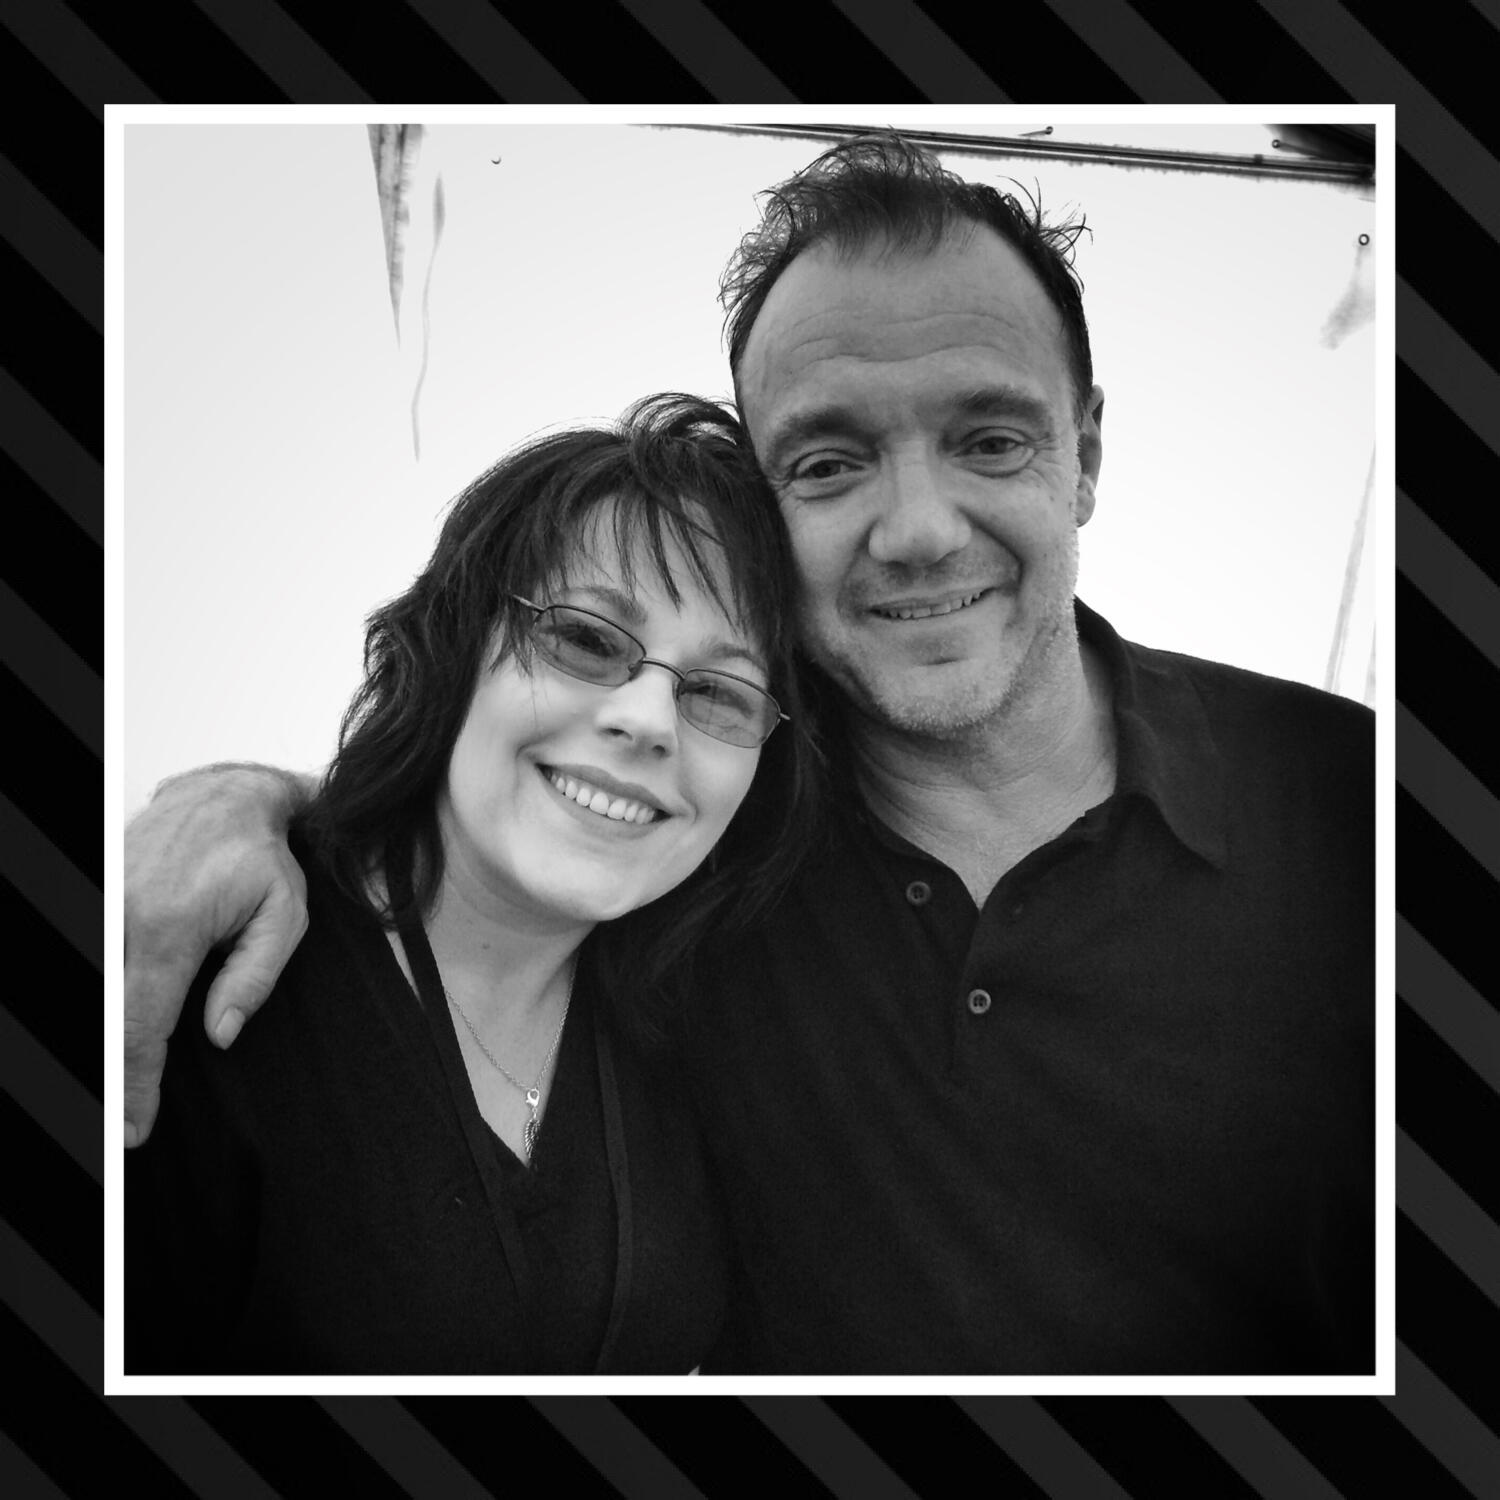 55: The one with Guy Pratt